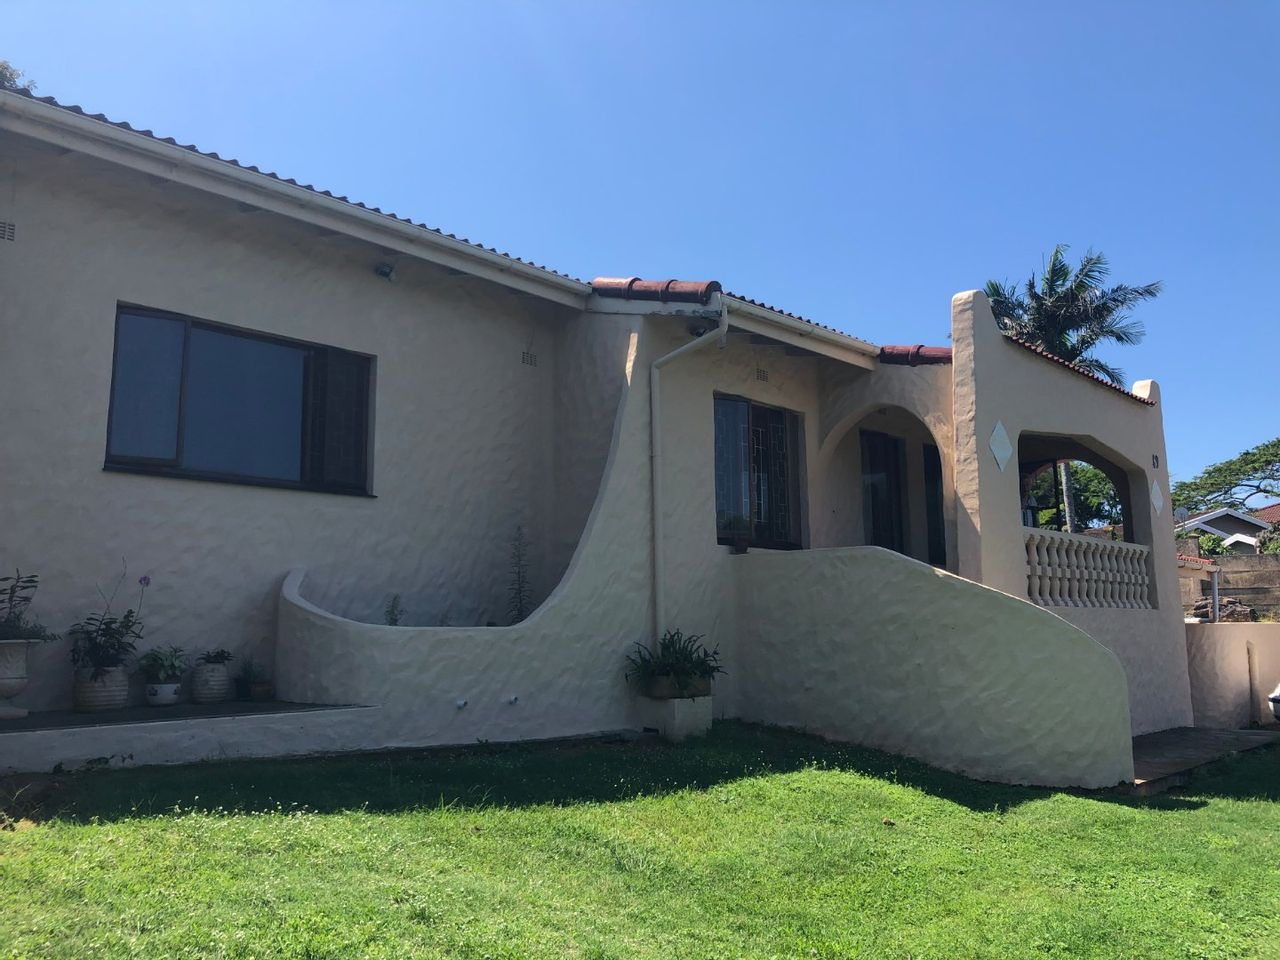 3 Bedroom House For Sale in Pennington   Seeff Property Group